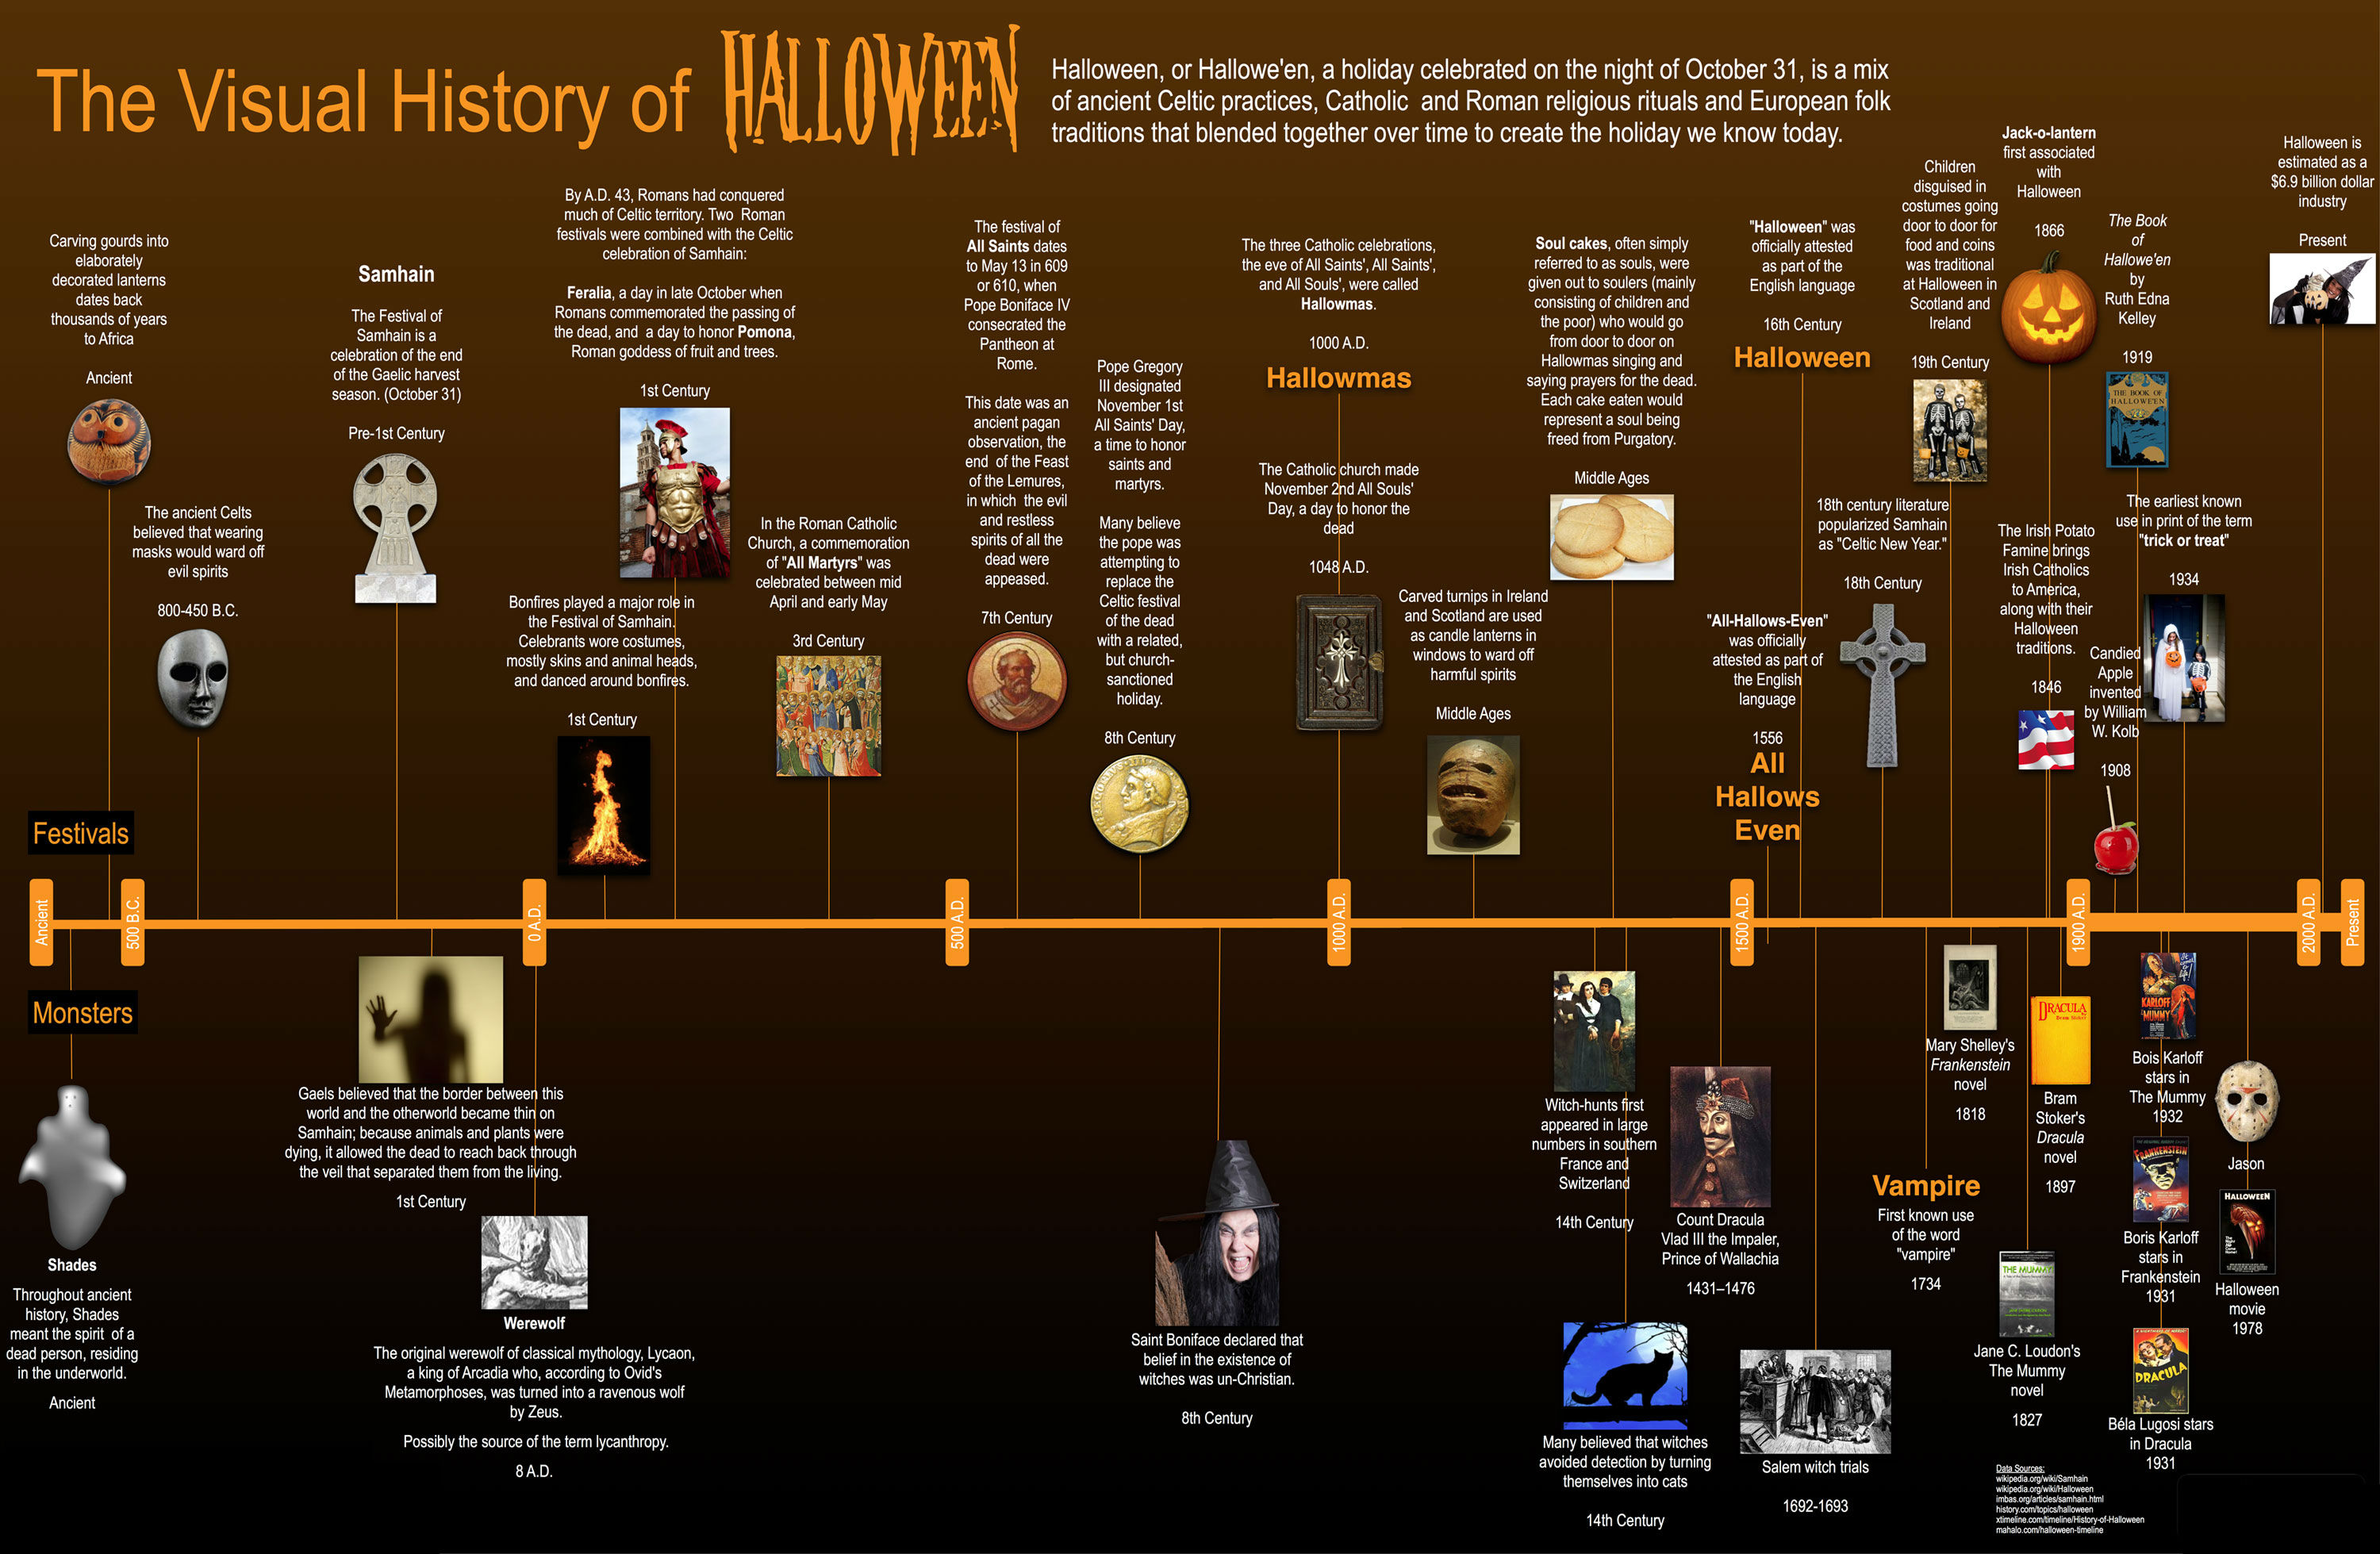 the visual history of